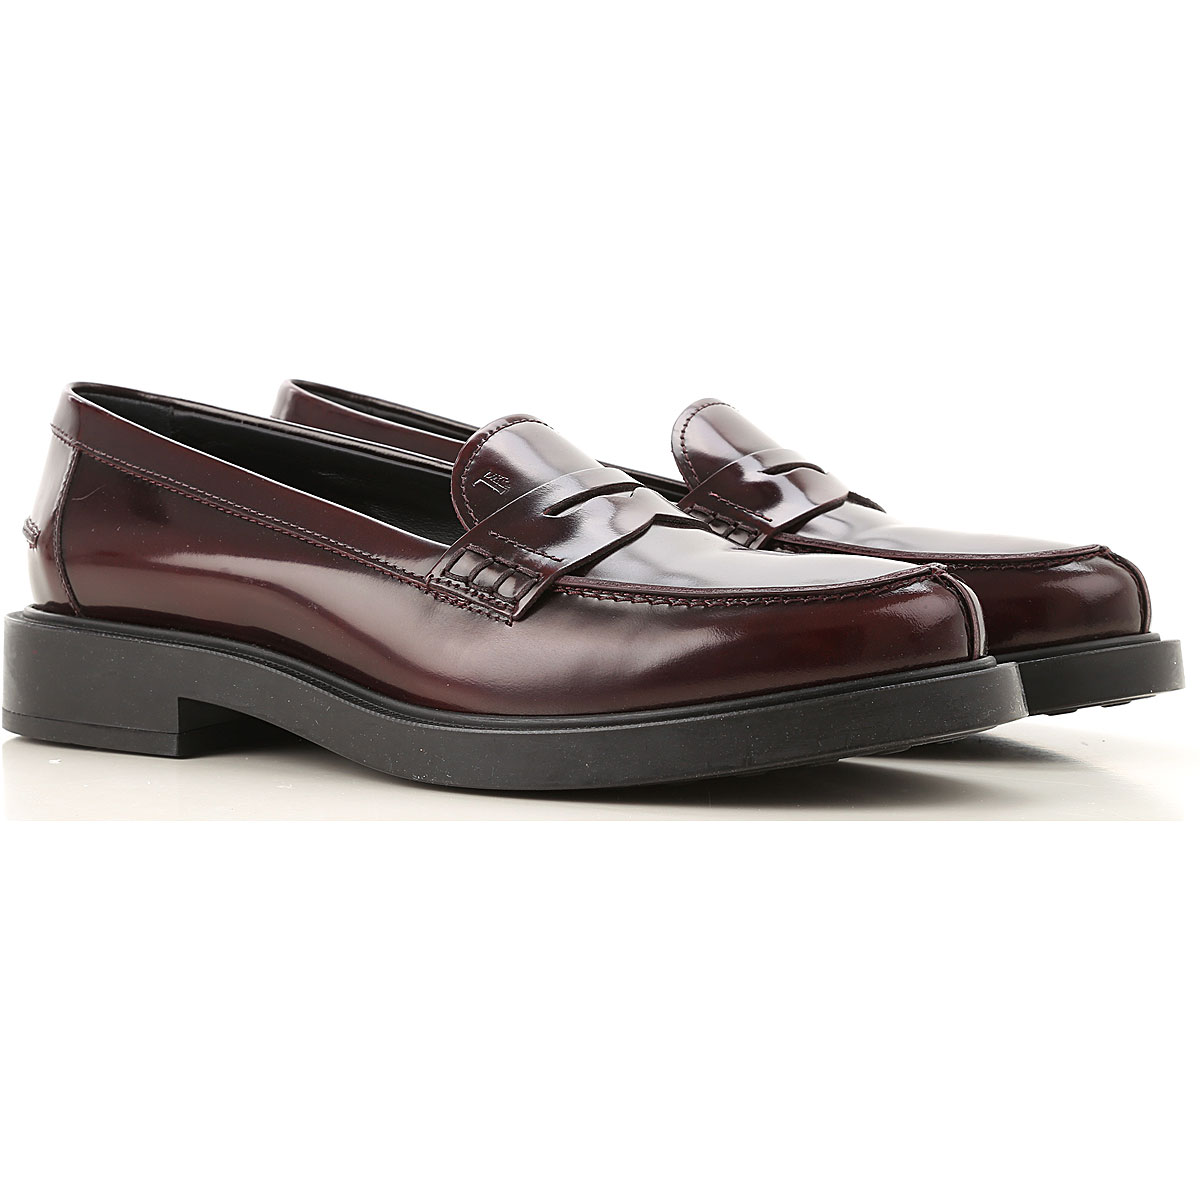 Tods Loafers for Women Bordeaux USA - GOOFASH